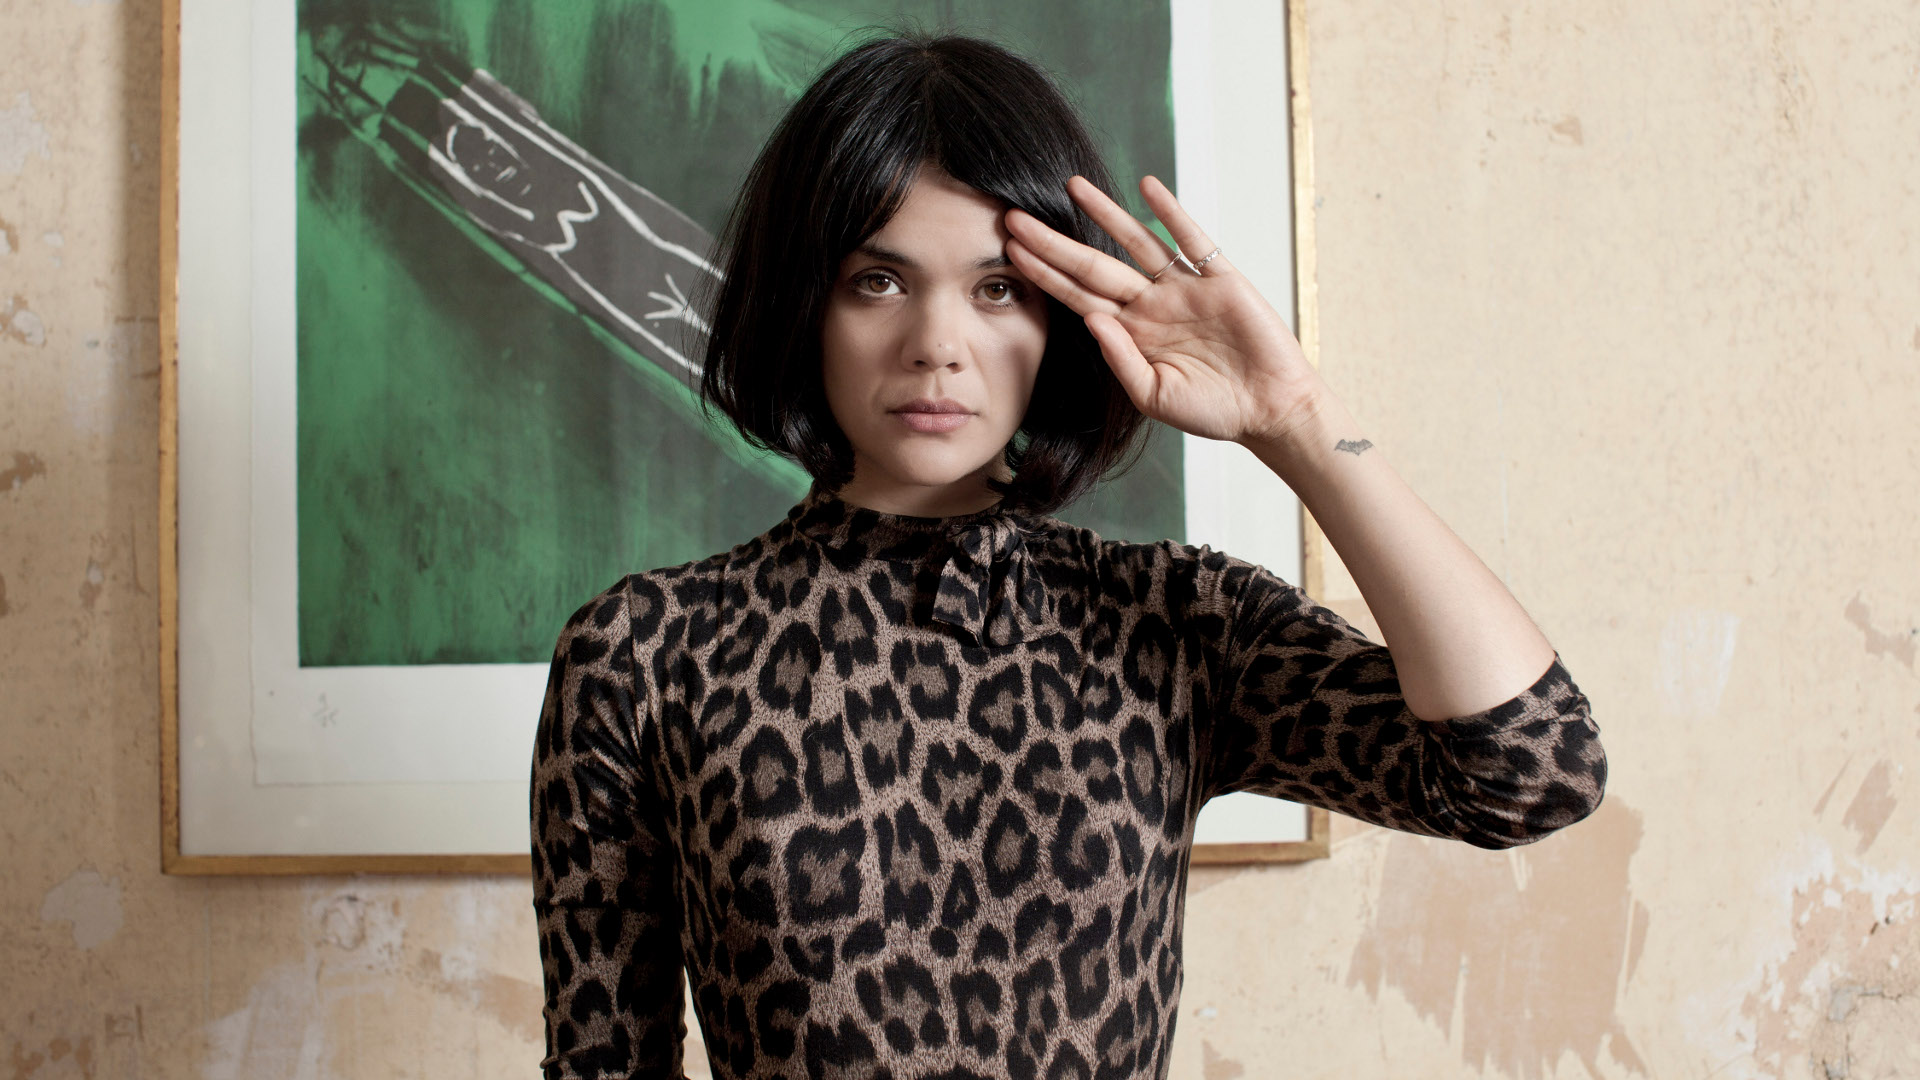 Bat for Lashes, July 27, 2012, press photo by Eliot Lee Hazel, 01 (1920x1080)